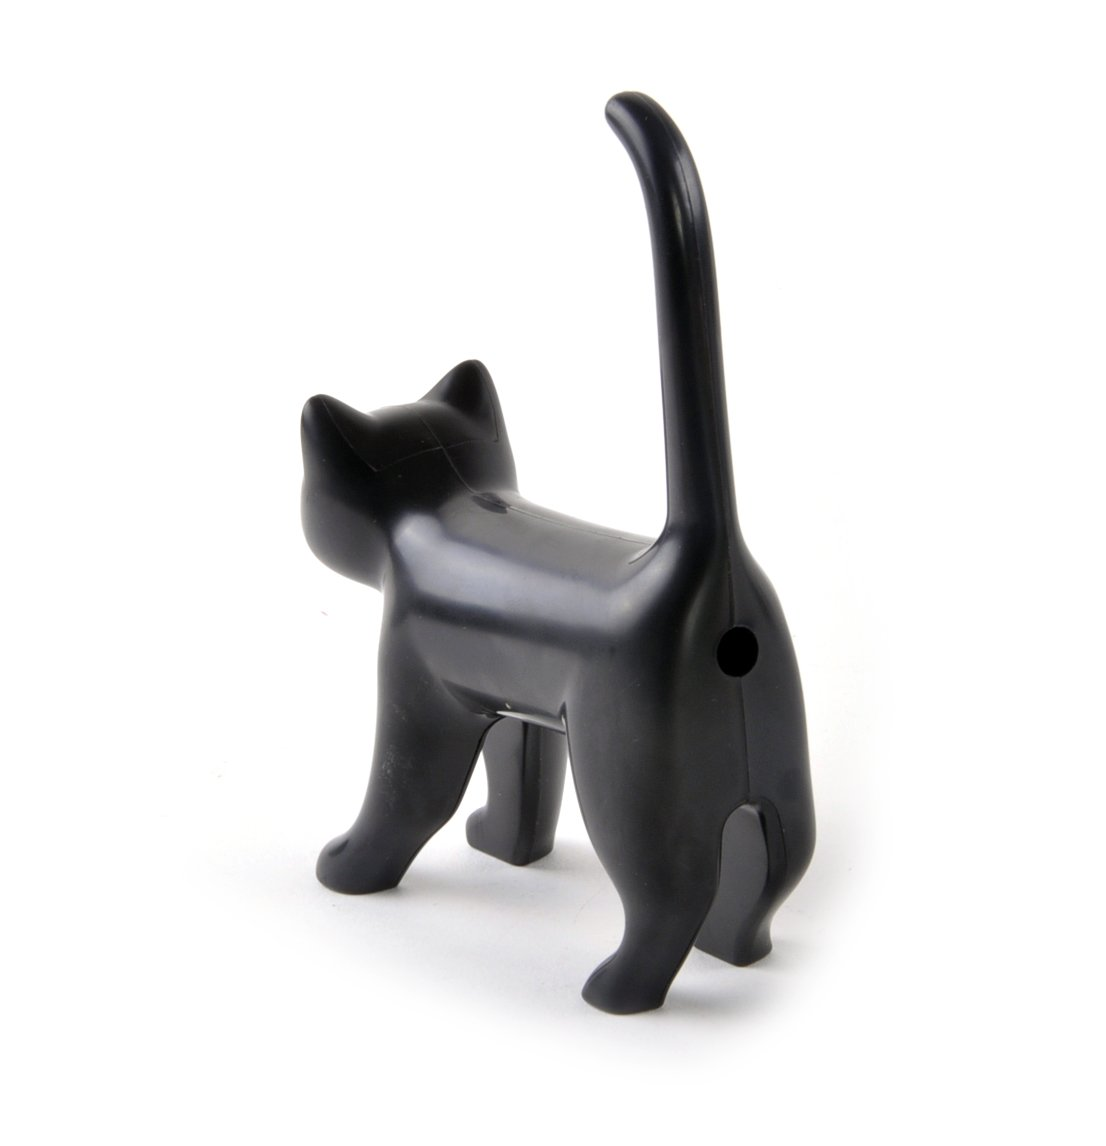 Sharp end cats bum pencil Sharpener - Black Luckies of London Ltd 14413white